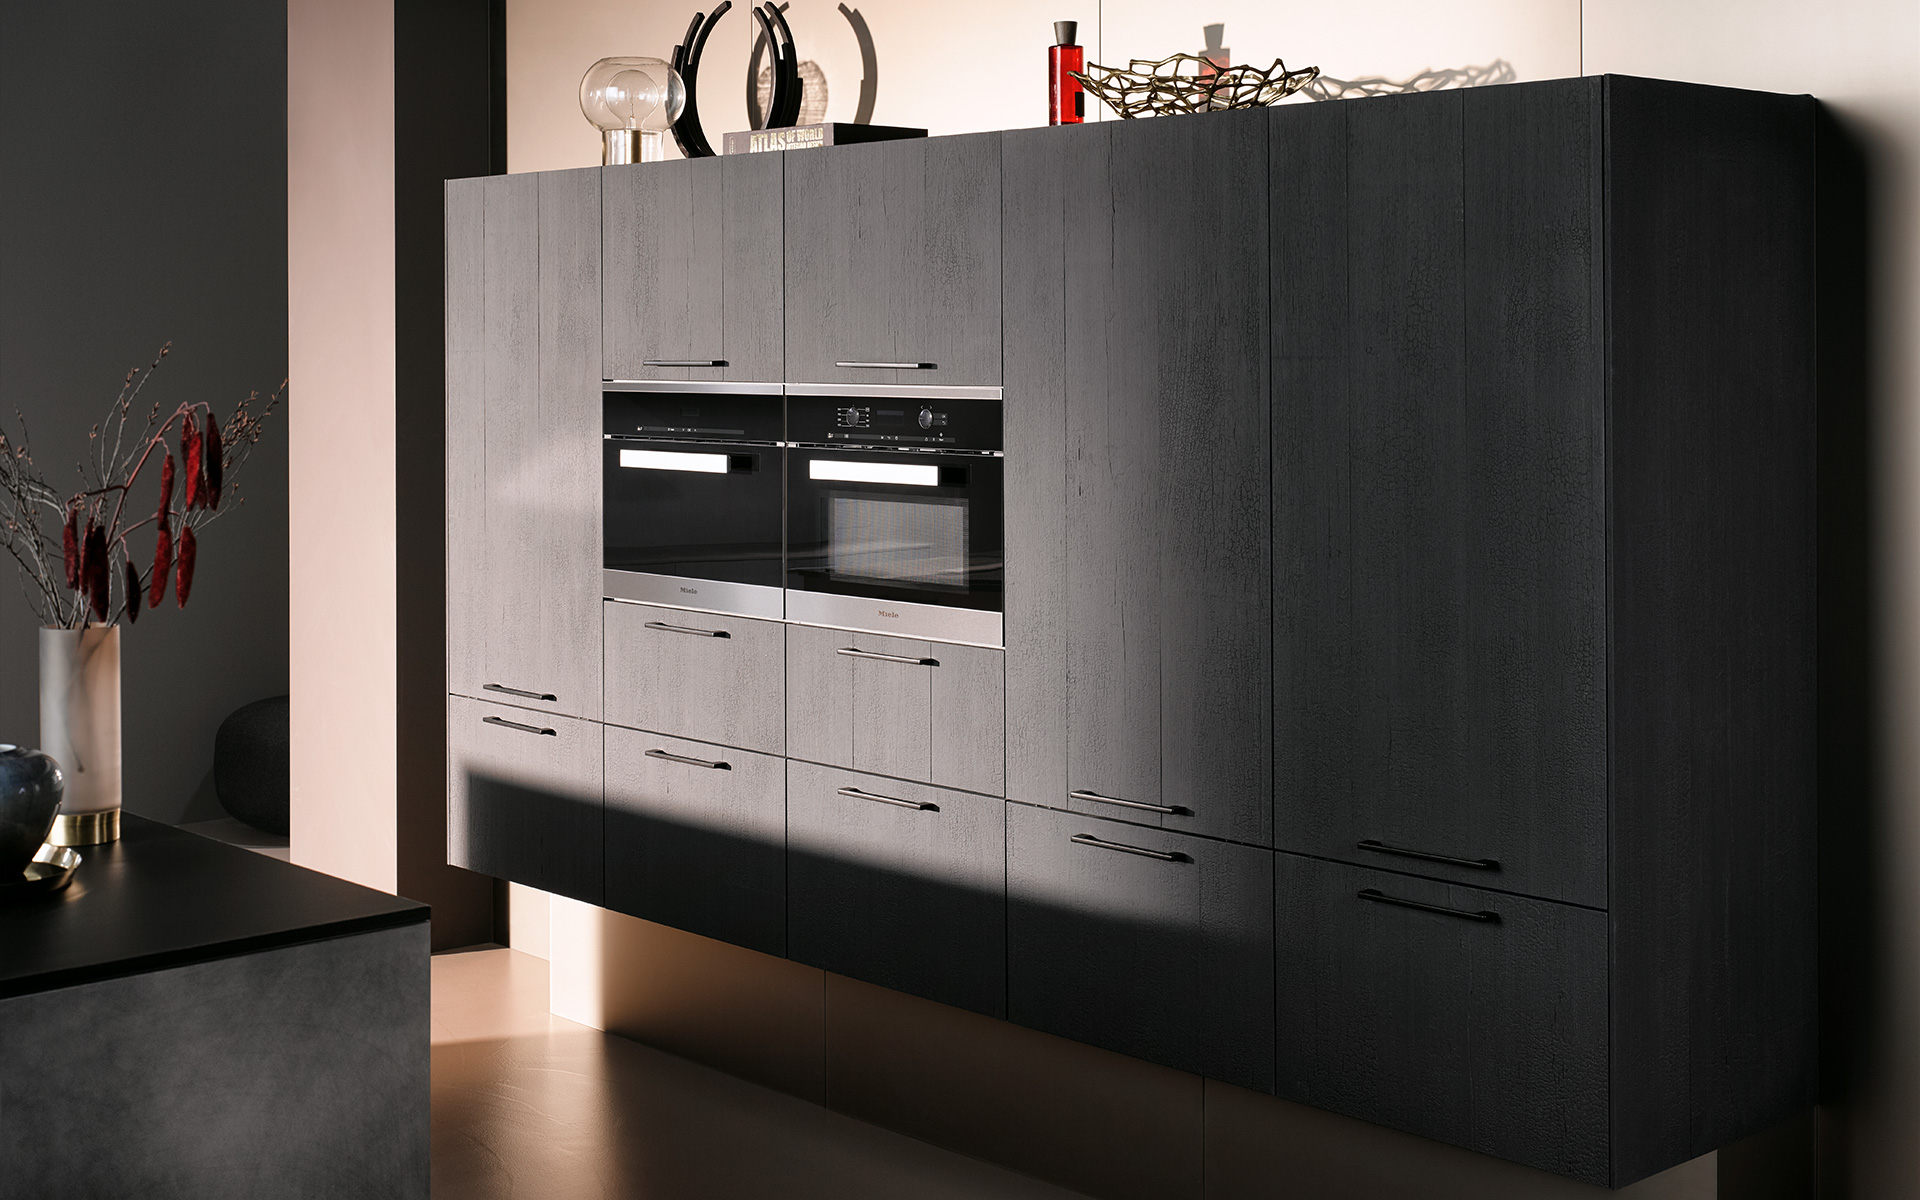 AV 6048 volcano oak. AV 7070 industrial steel